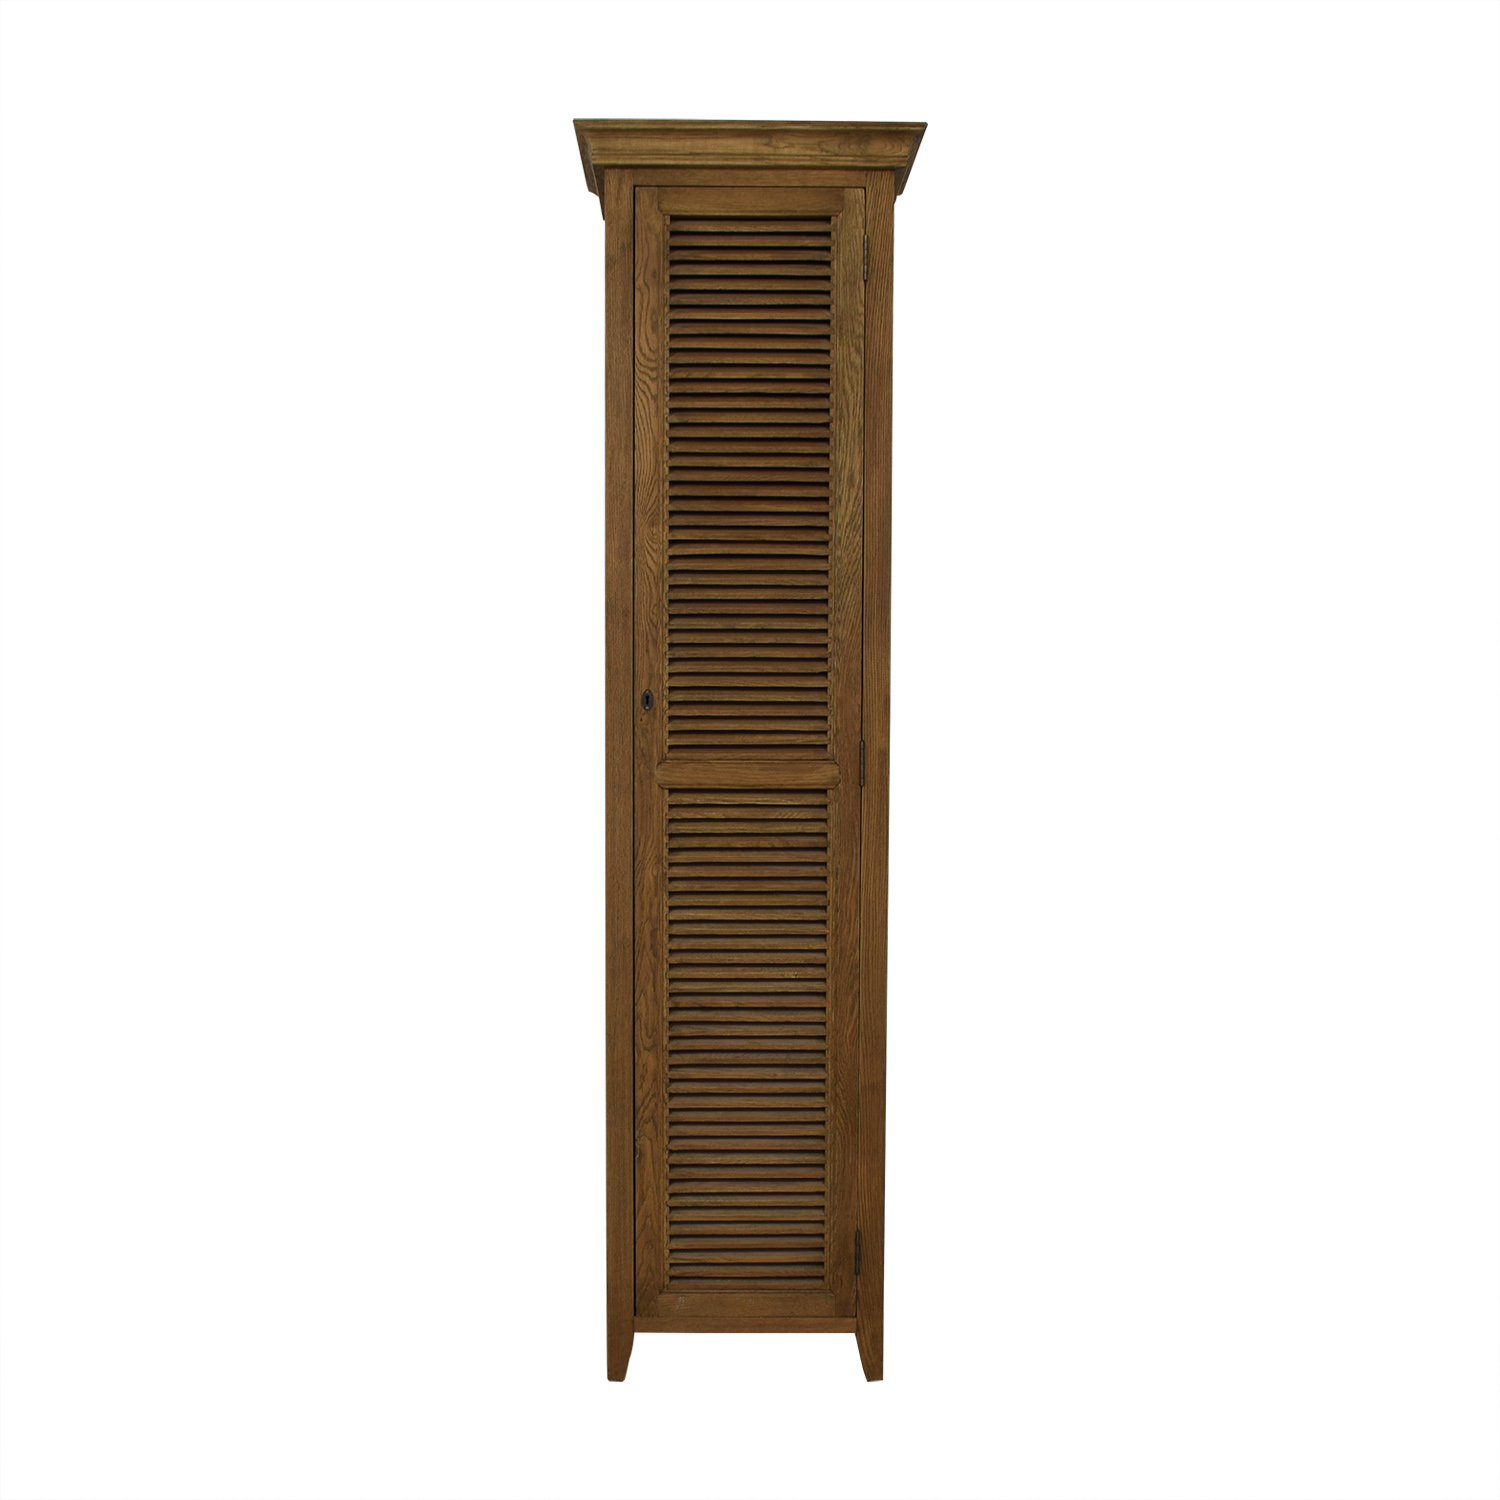 Restoration Hardware Tall Shutter Cabinet sale